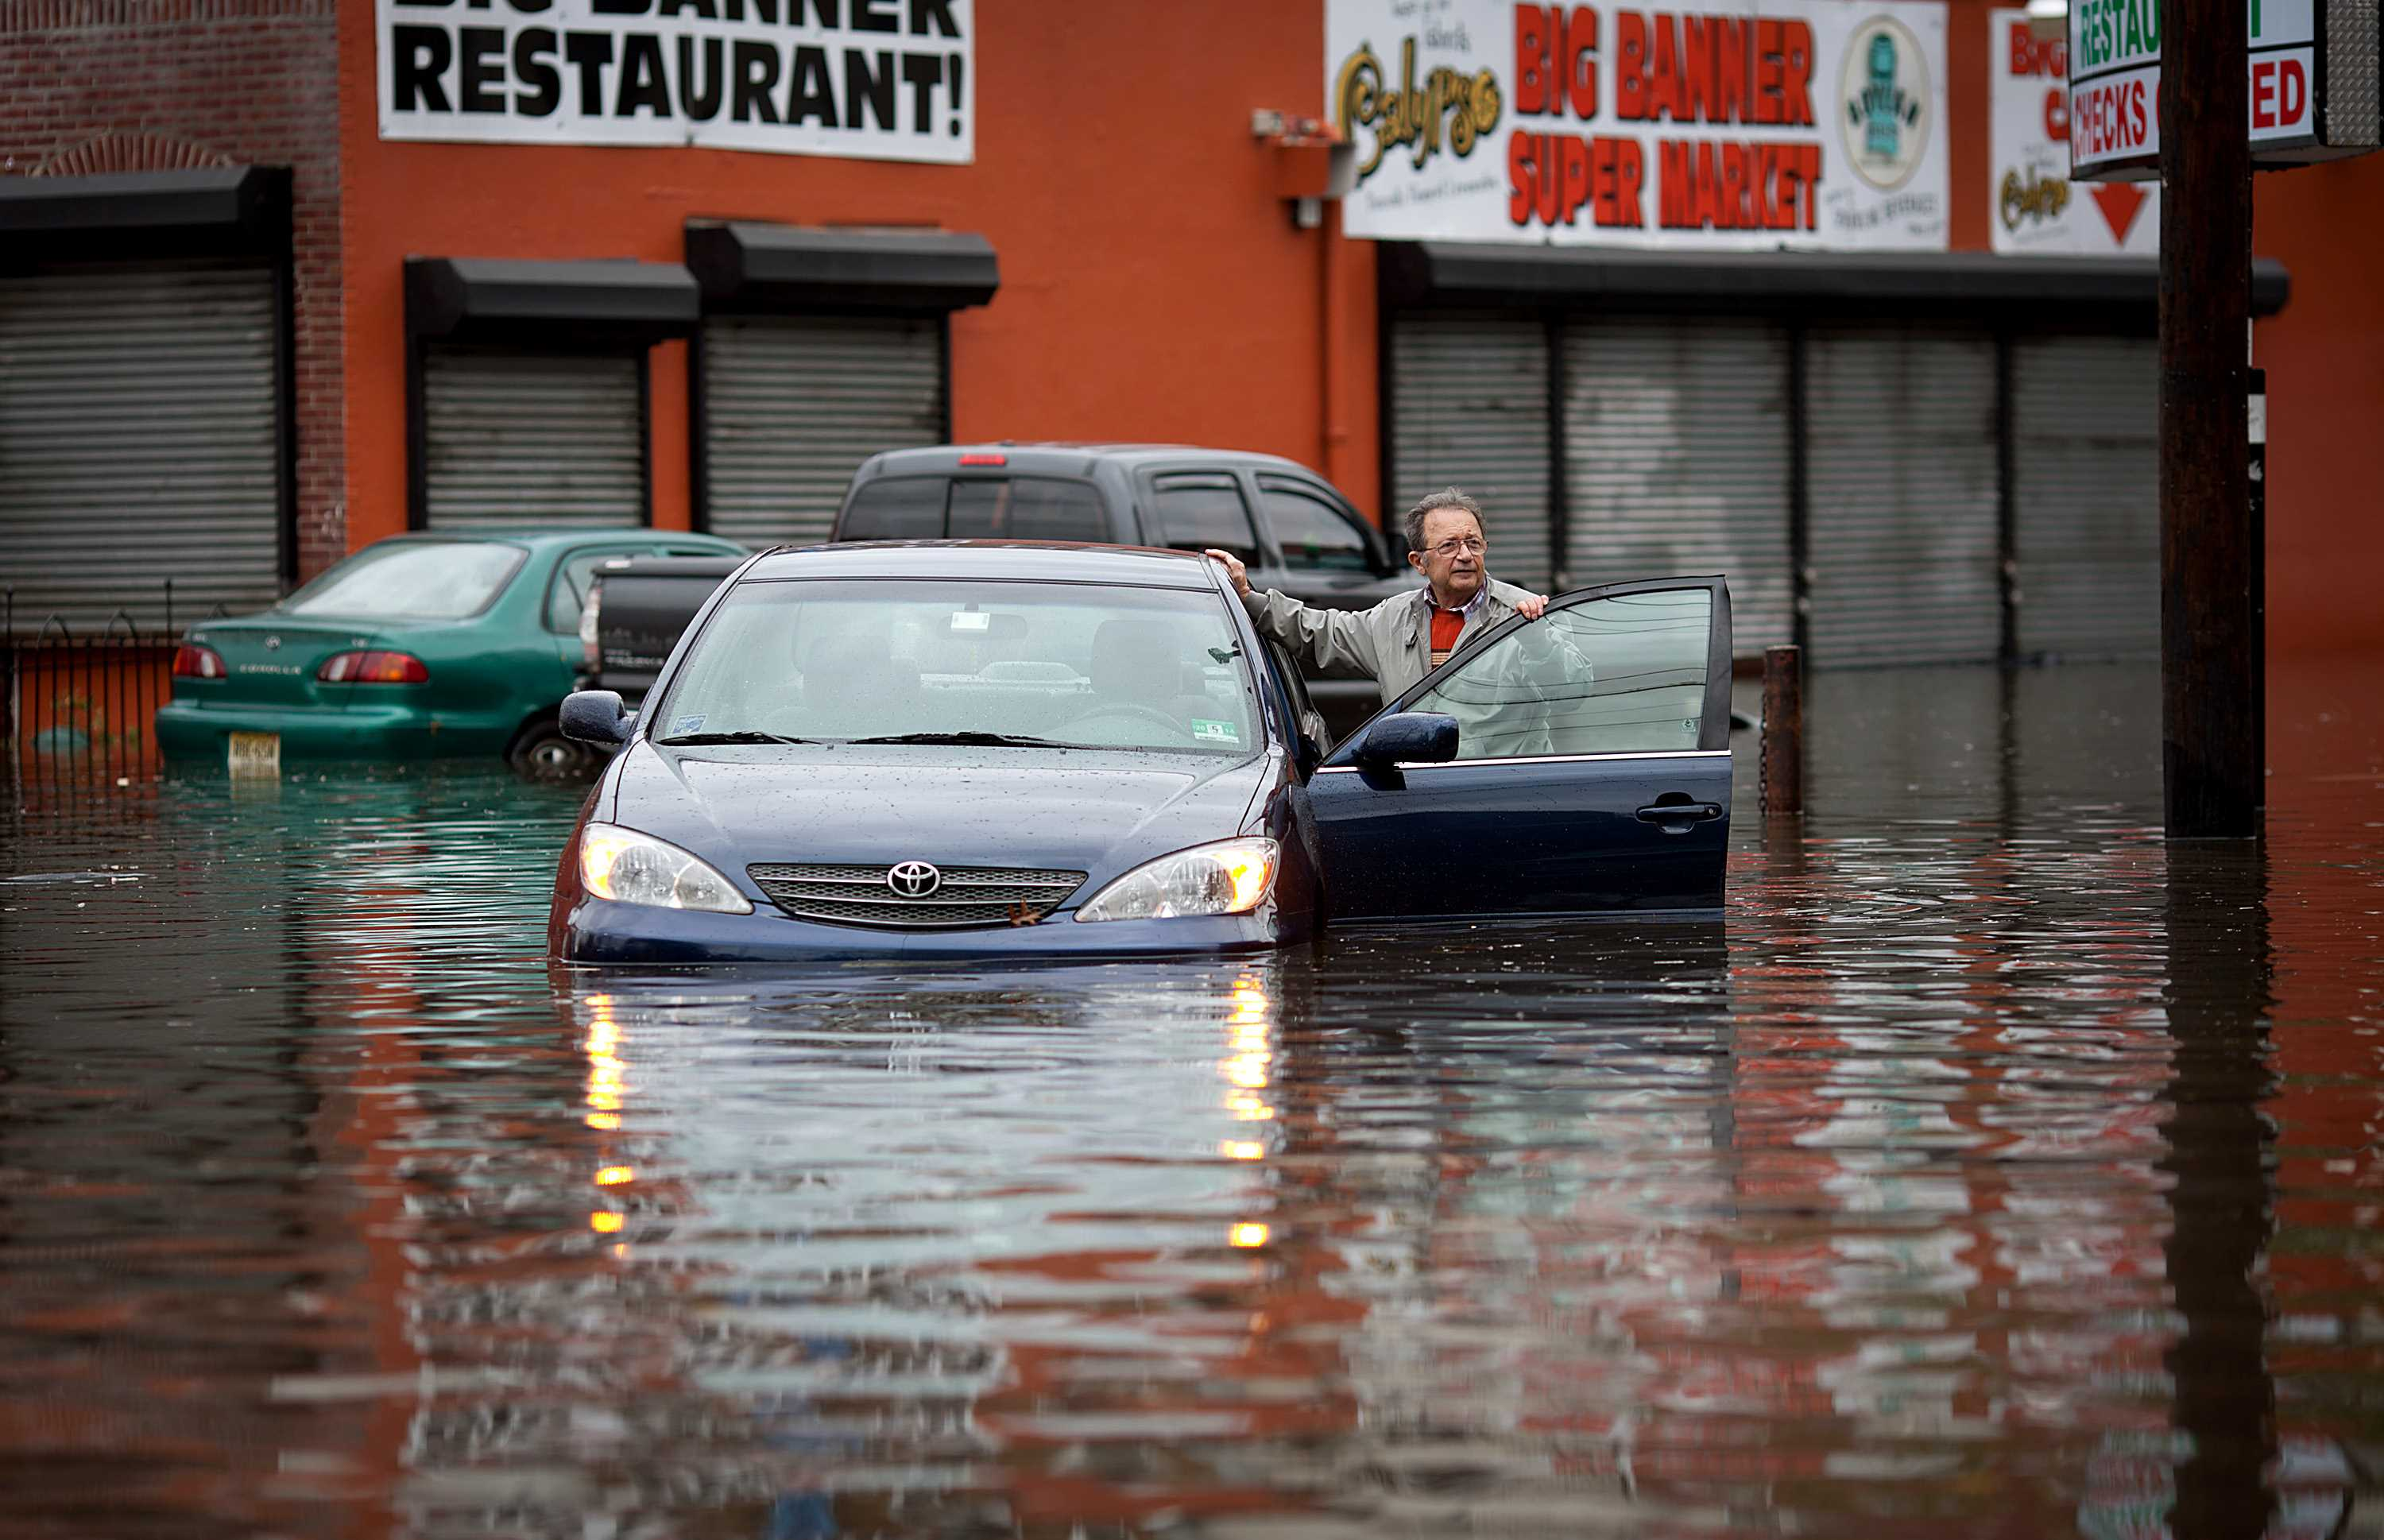 Property/casualty industry will survive Sandy damages with short-term challenges: Moody's, S&P